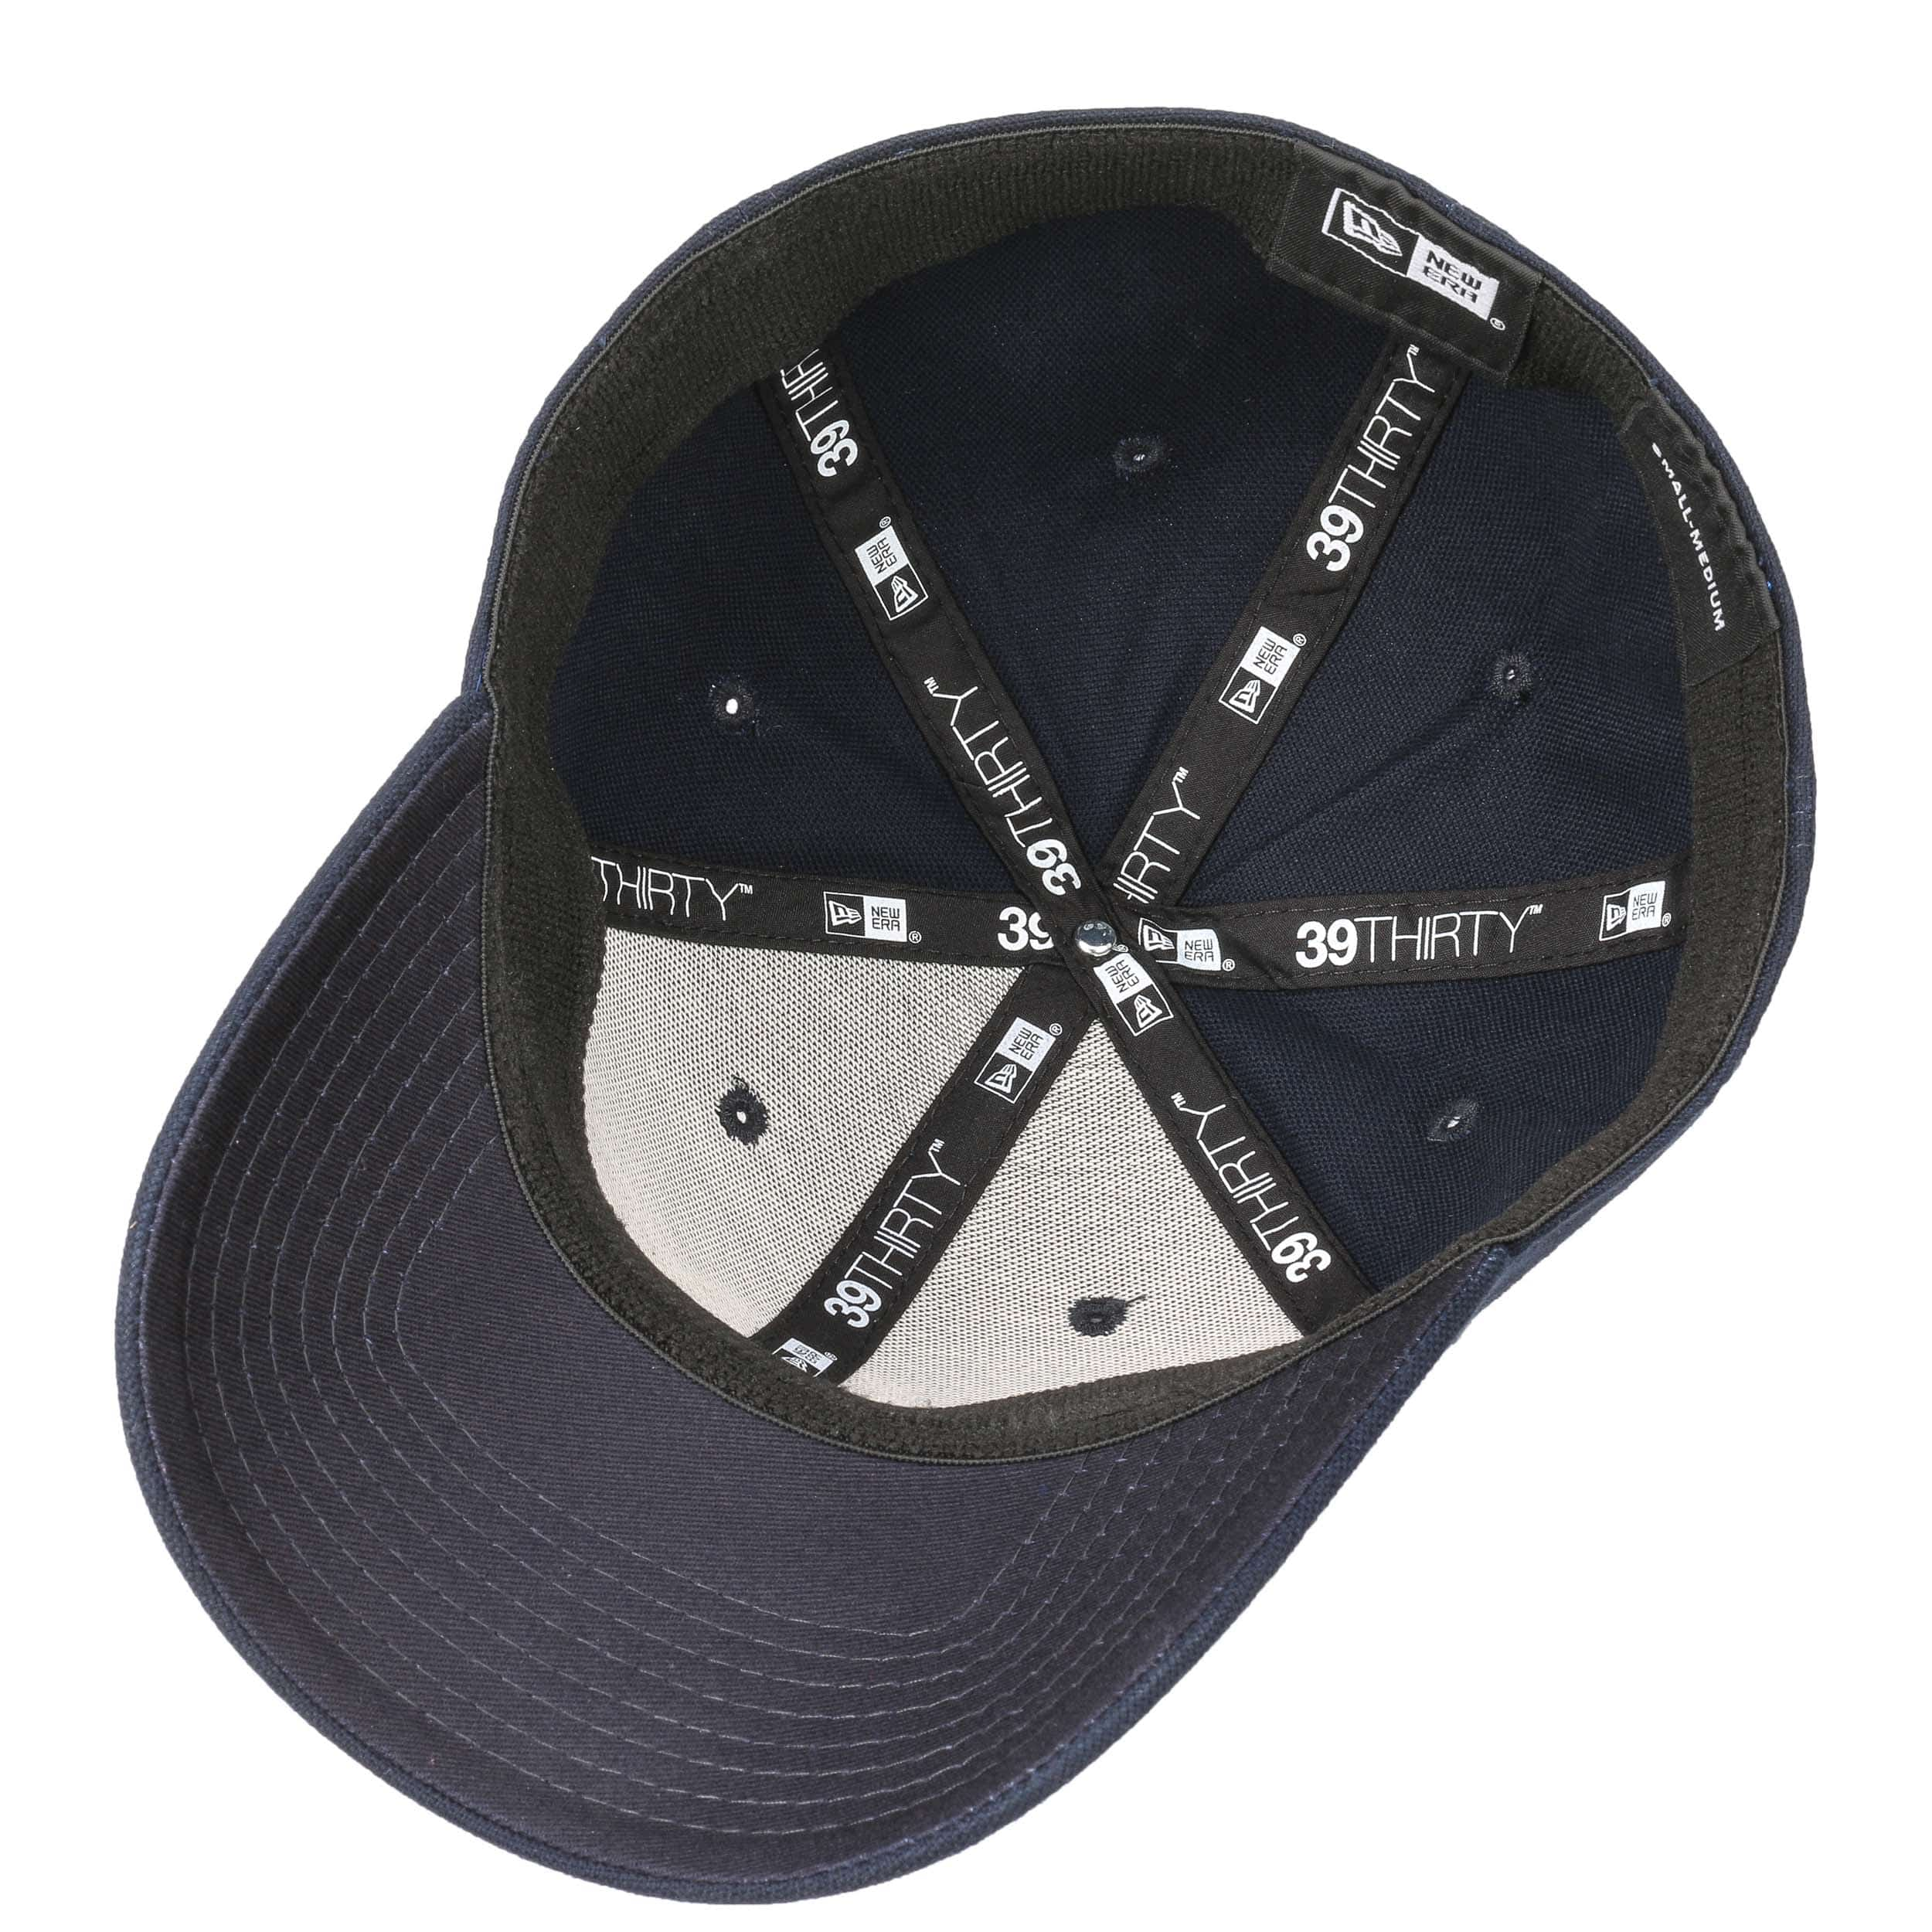 ... 39Thirty Stretch Hex Patch Cap by New Era - navy 2 ... 641b9d8ac3c2